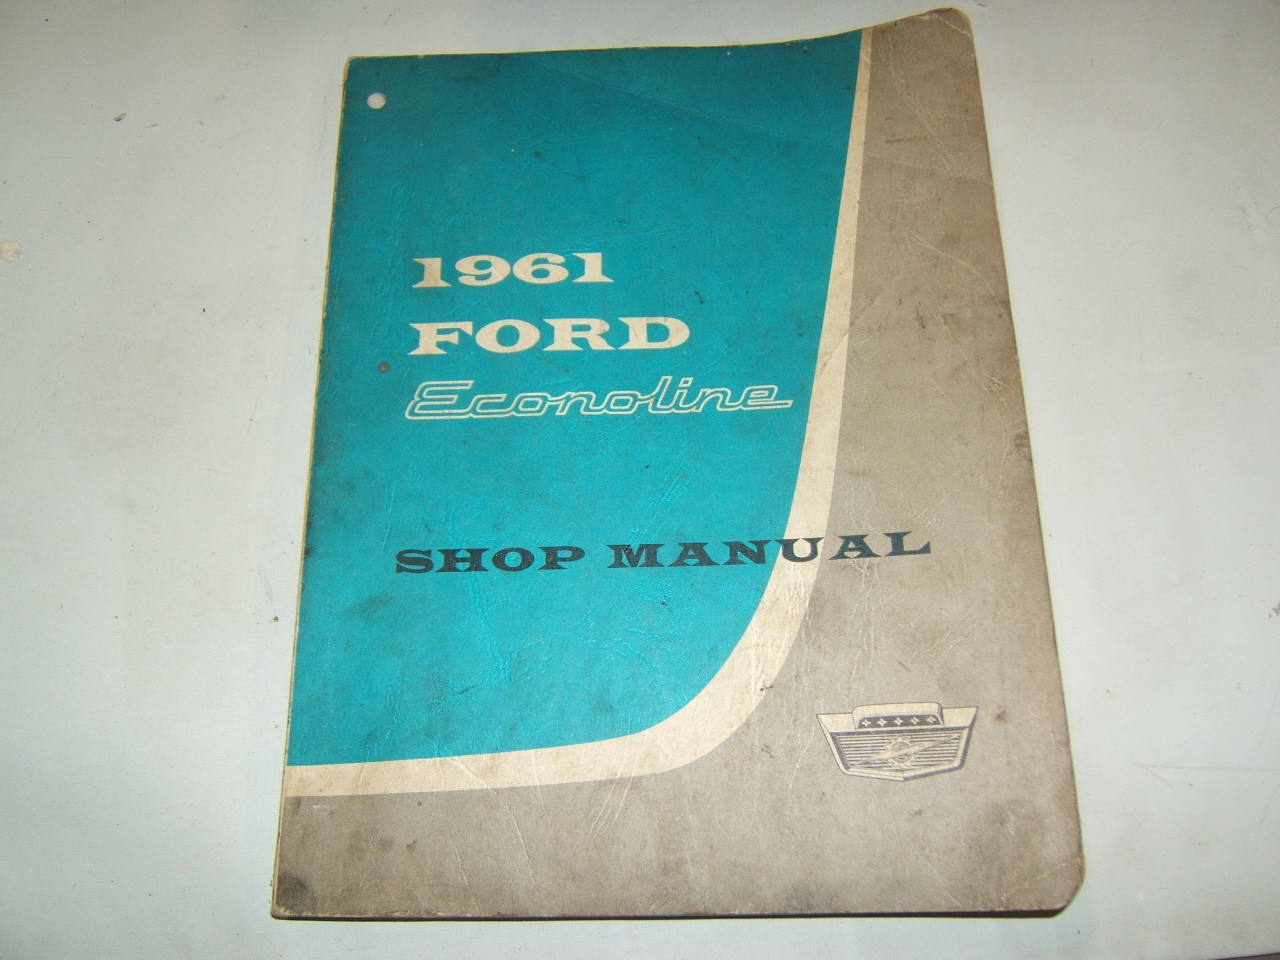 1961 Ford Econoline van service manual factory original (a 61 fordeconman)